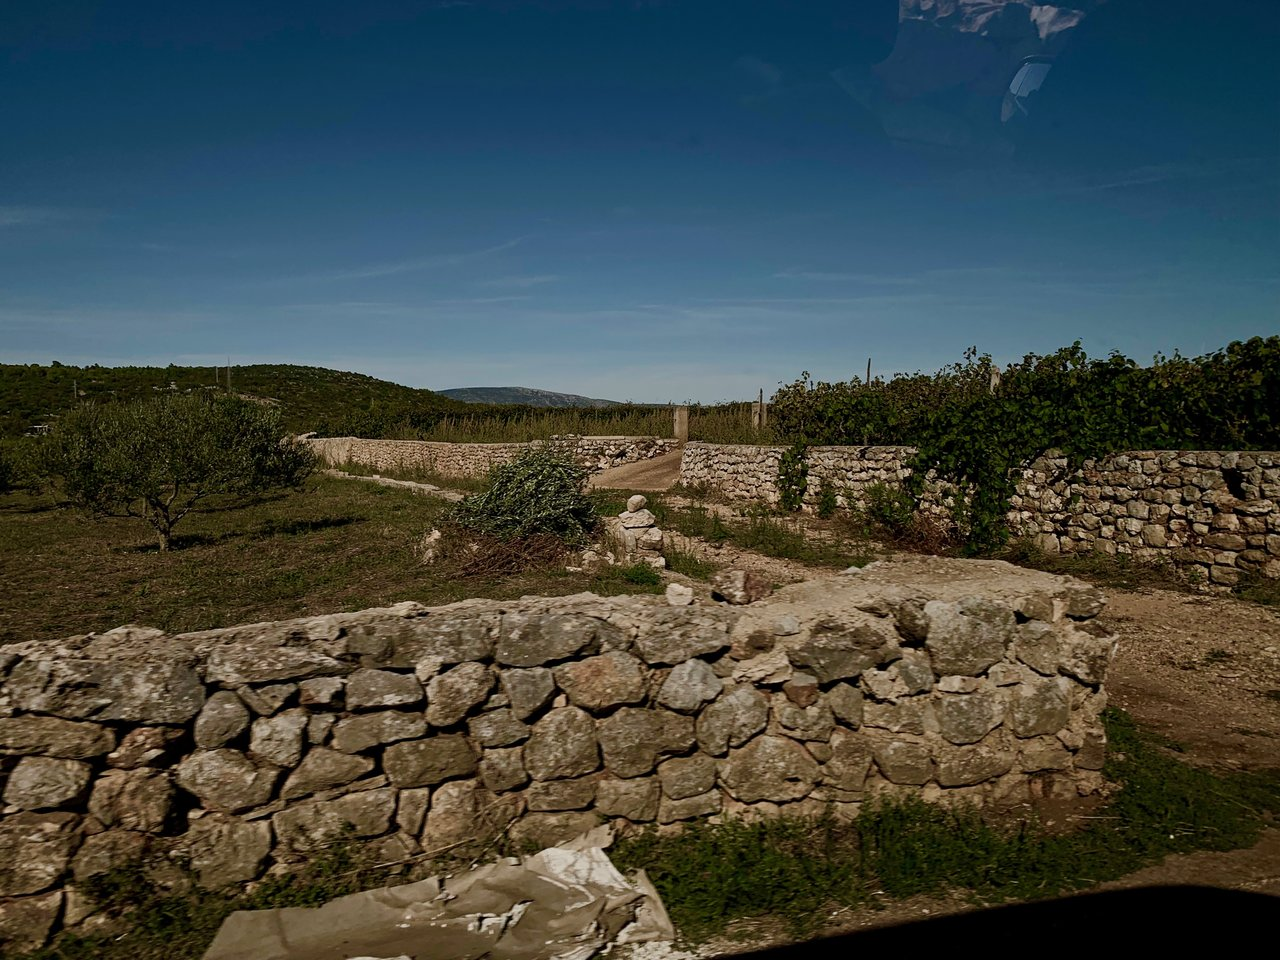 Stone walls dating back to ancient Greek settlers | Photo taken by Eva W